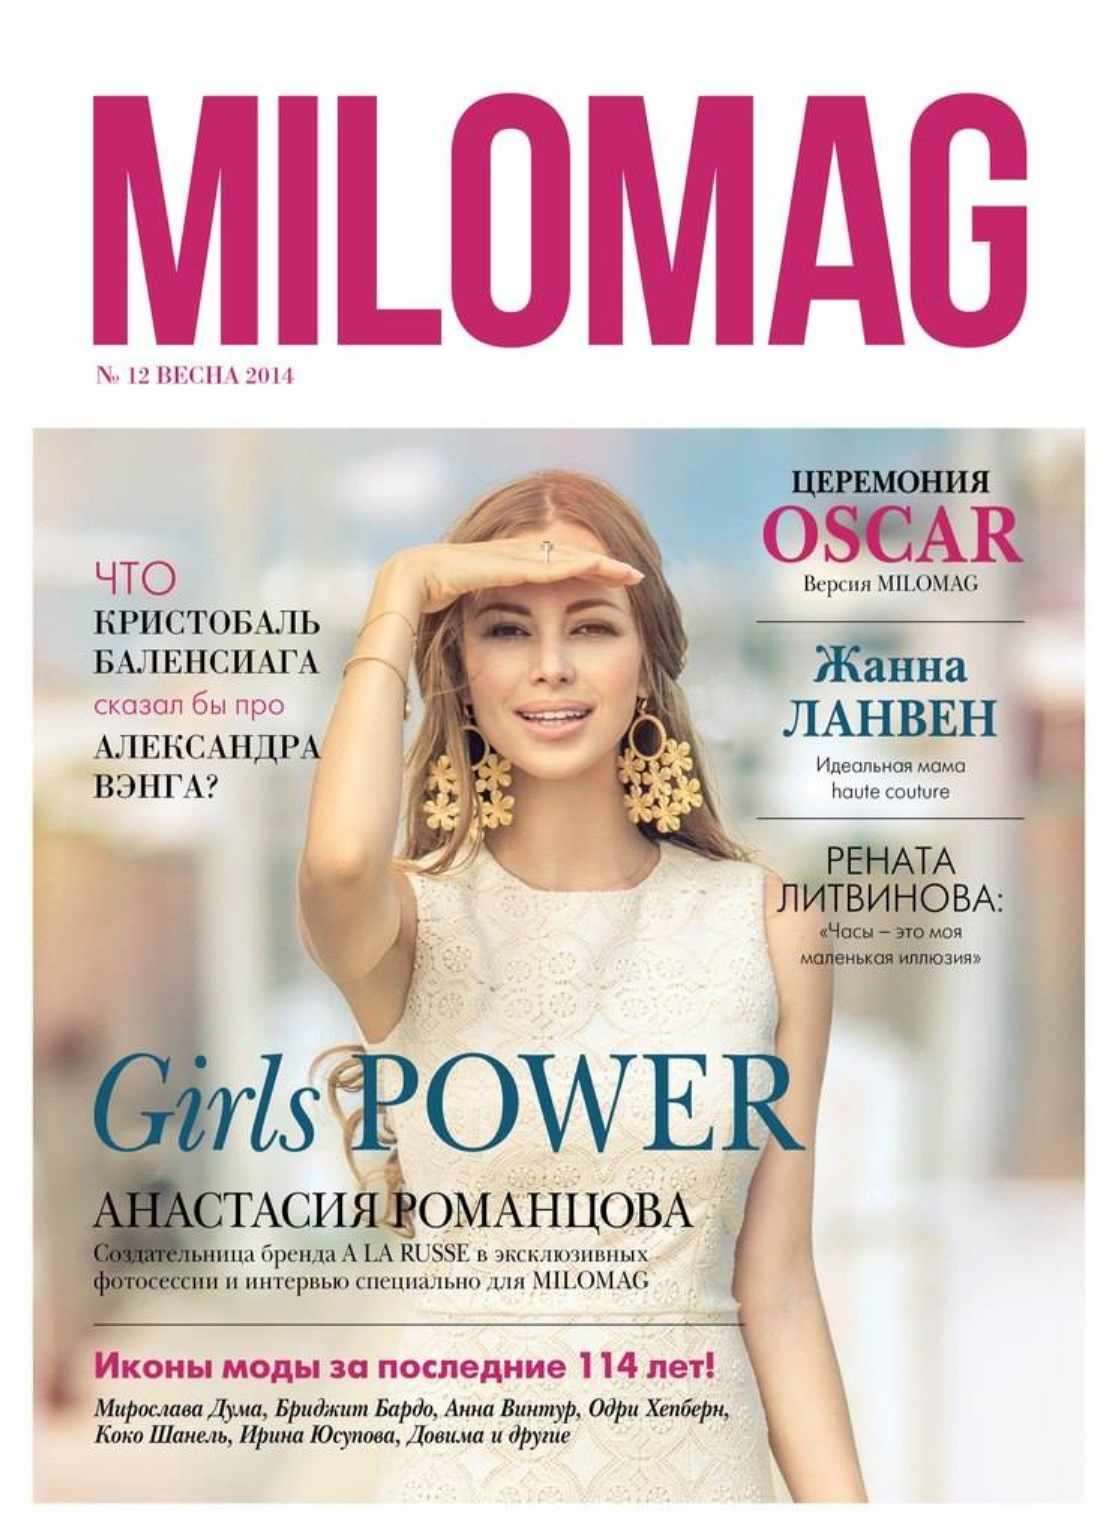 MILOMAG Cover and Spread